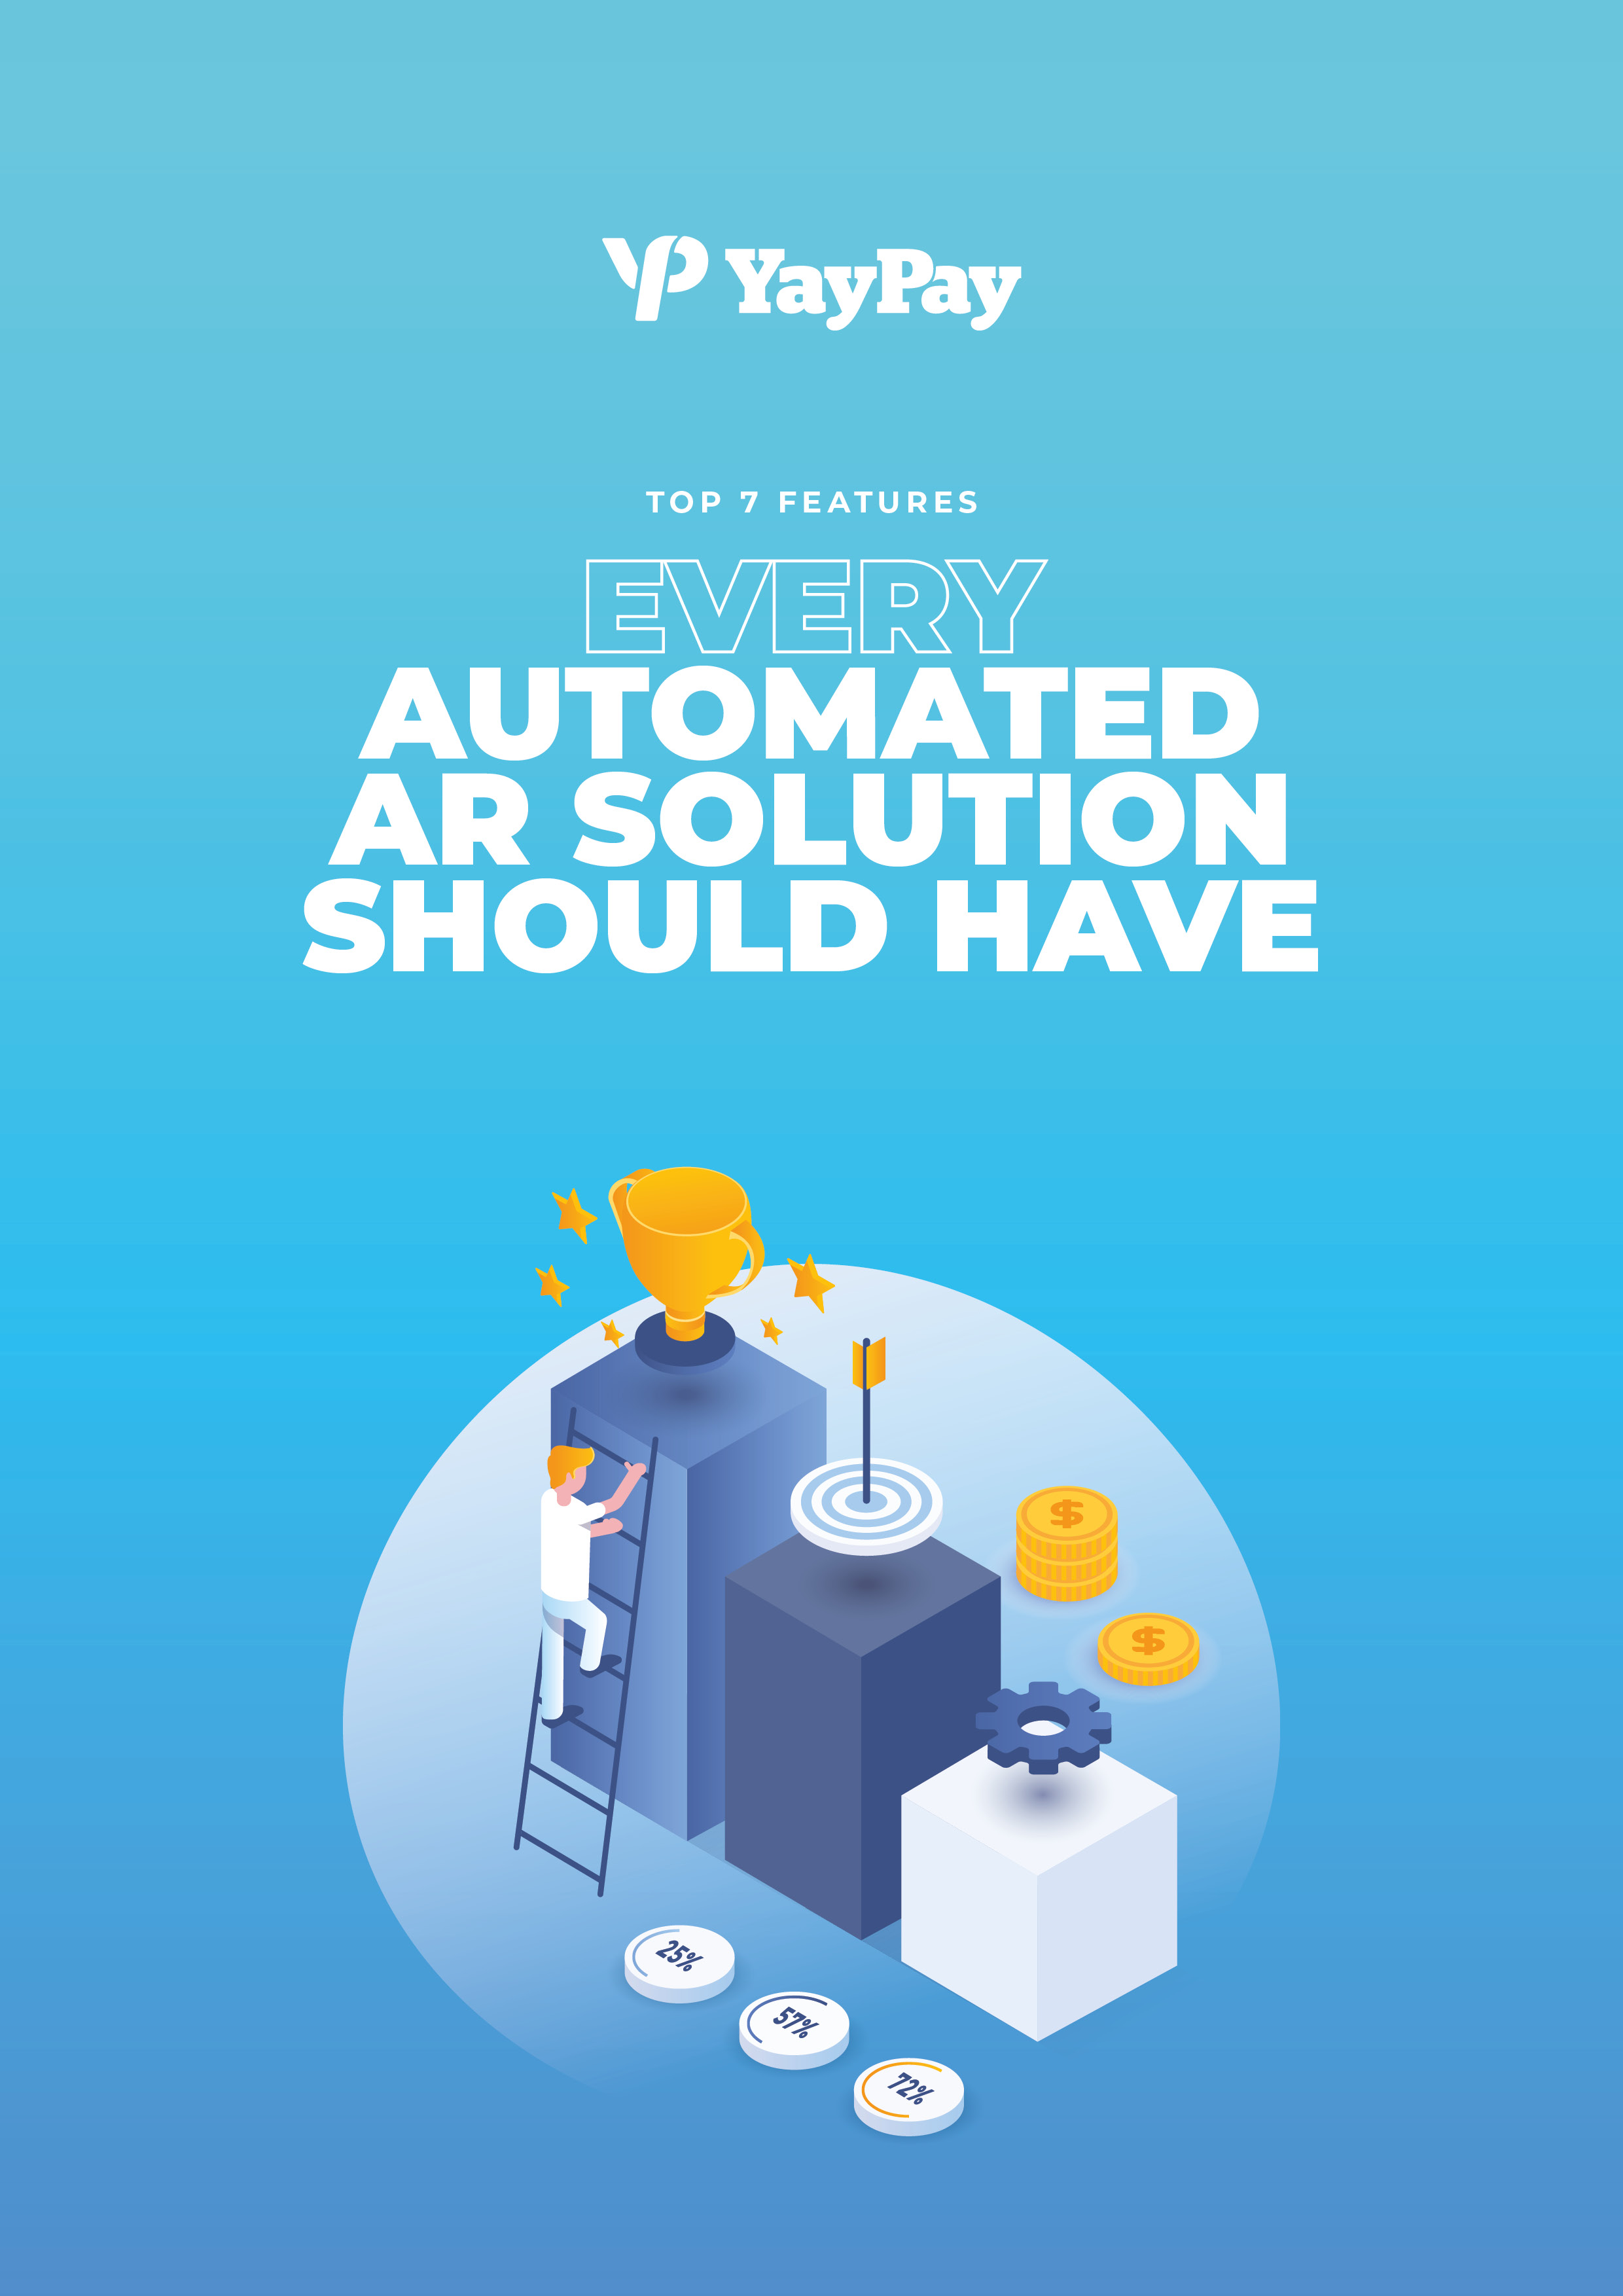 Checklist: Top 7 Features Every Automated AR Solution Should Have